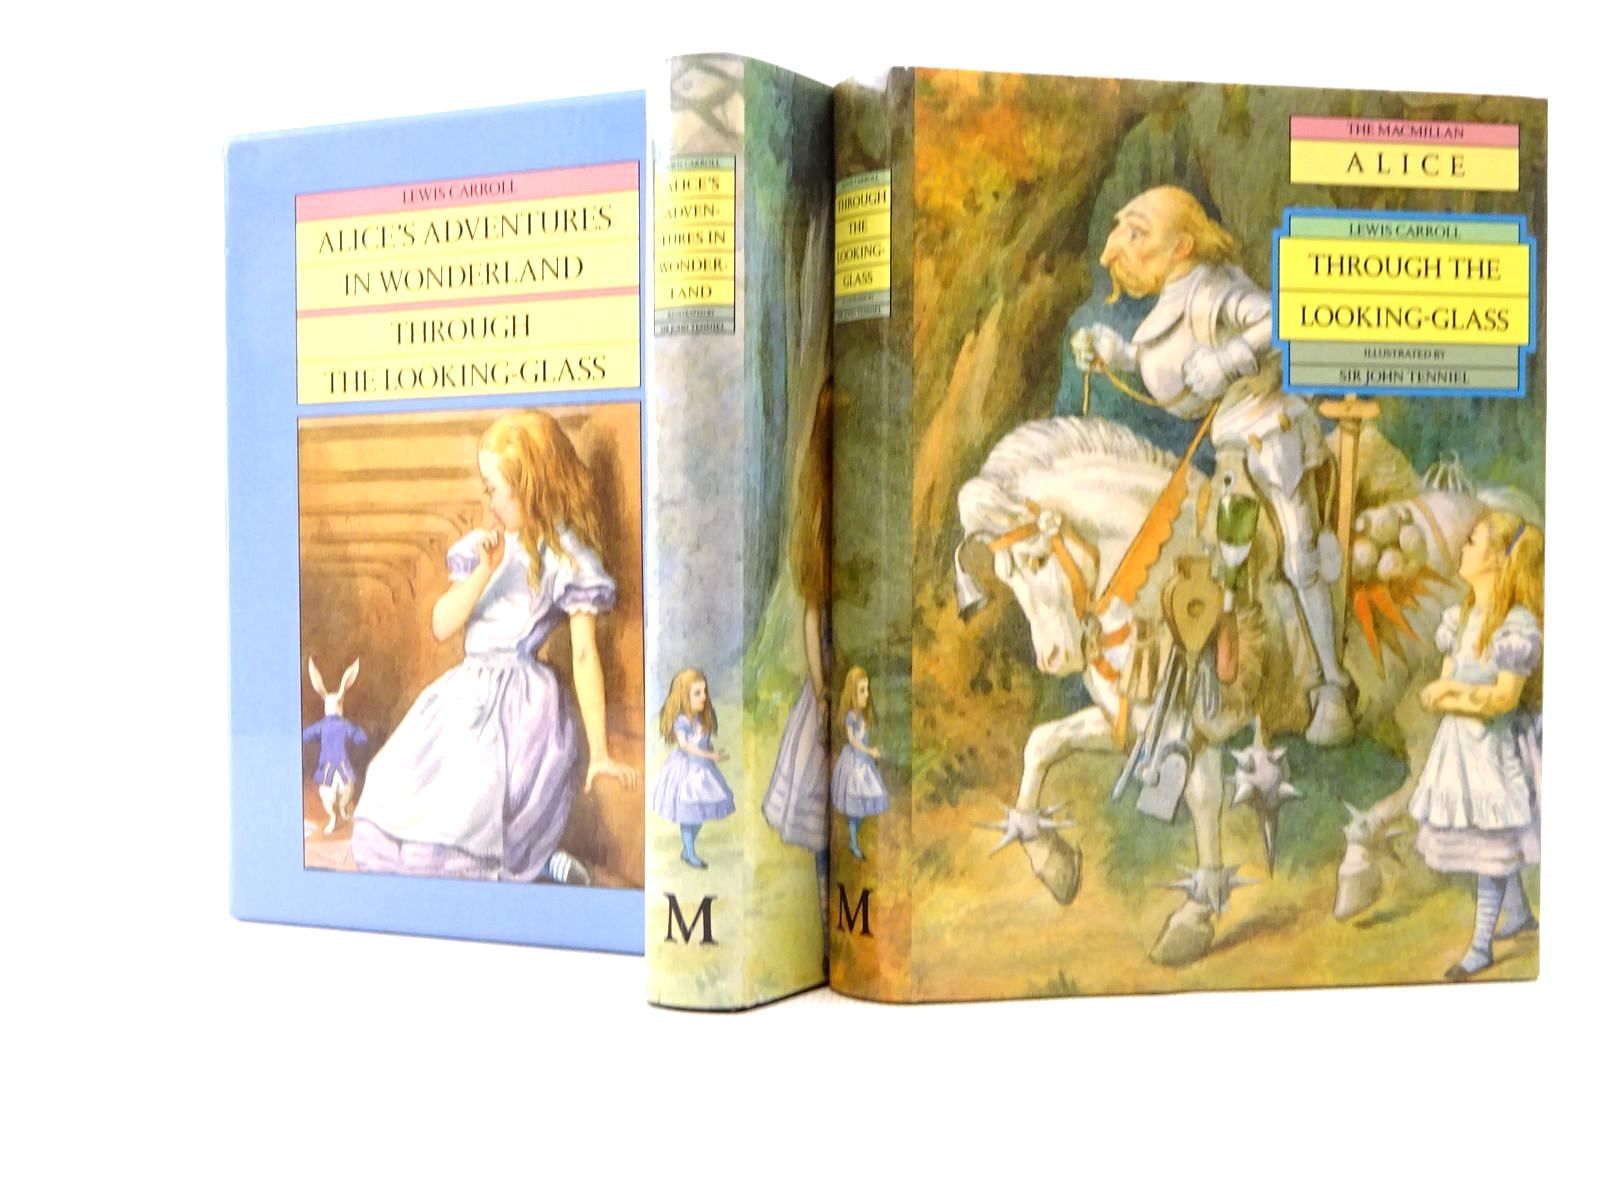 Photo of ALICE'S ADVENTURES IN WONDERLAND AND THROUGH THE LOOKING-GLASS written by Carroll, Lewis illustrated by Tenniel, John published by Macmillan Children's Books (STOCK CODE: 1317251)  for sale by Stella & Rose's Books